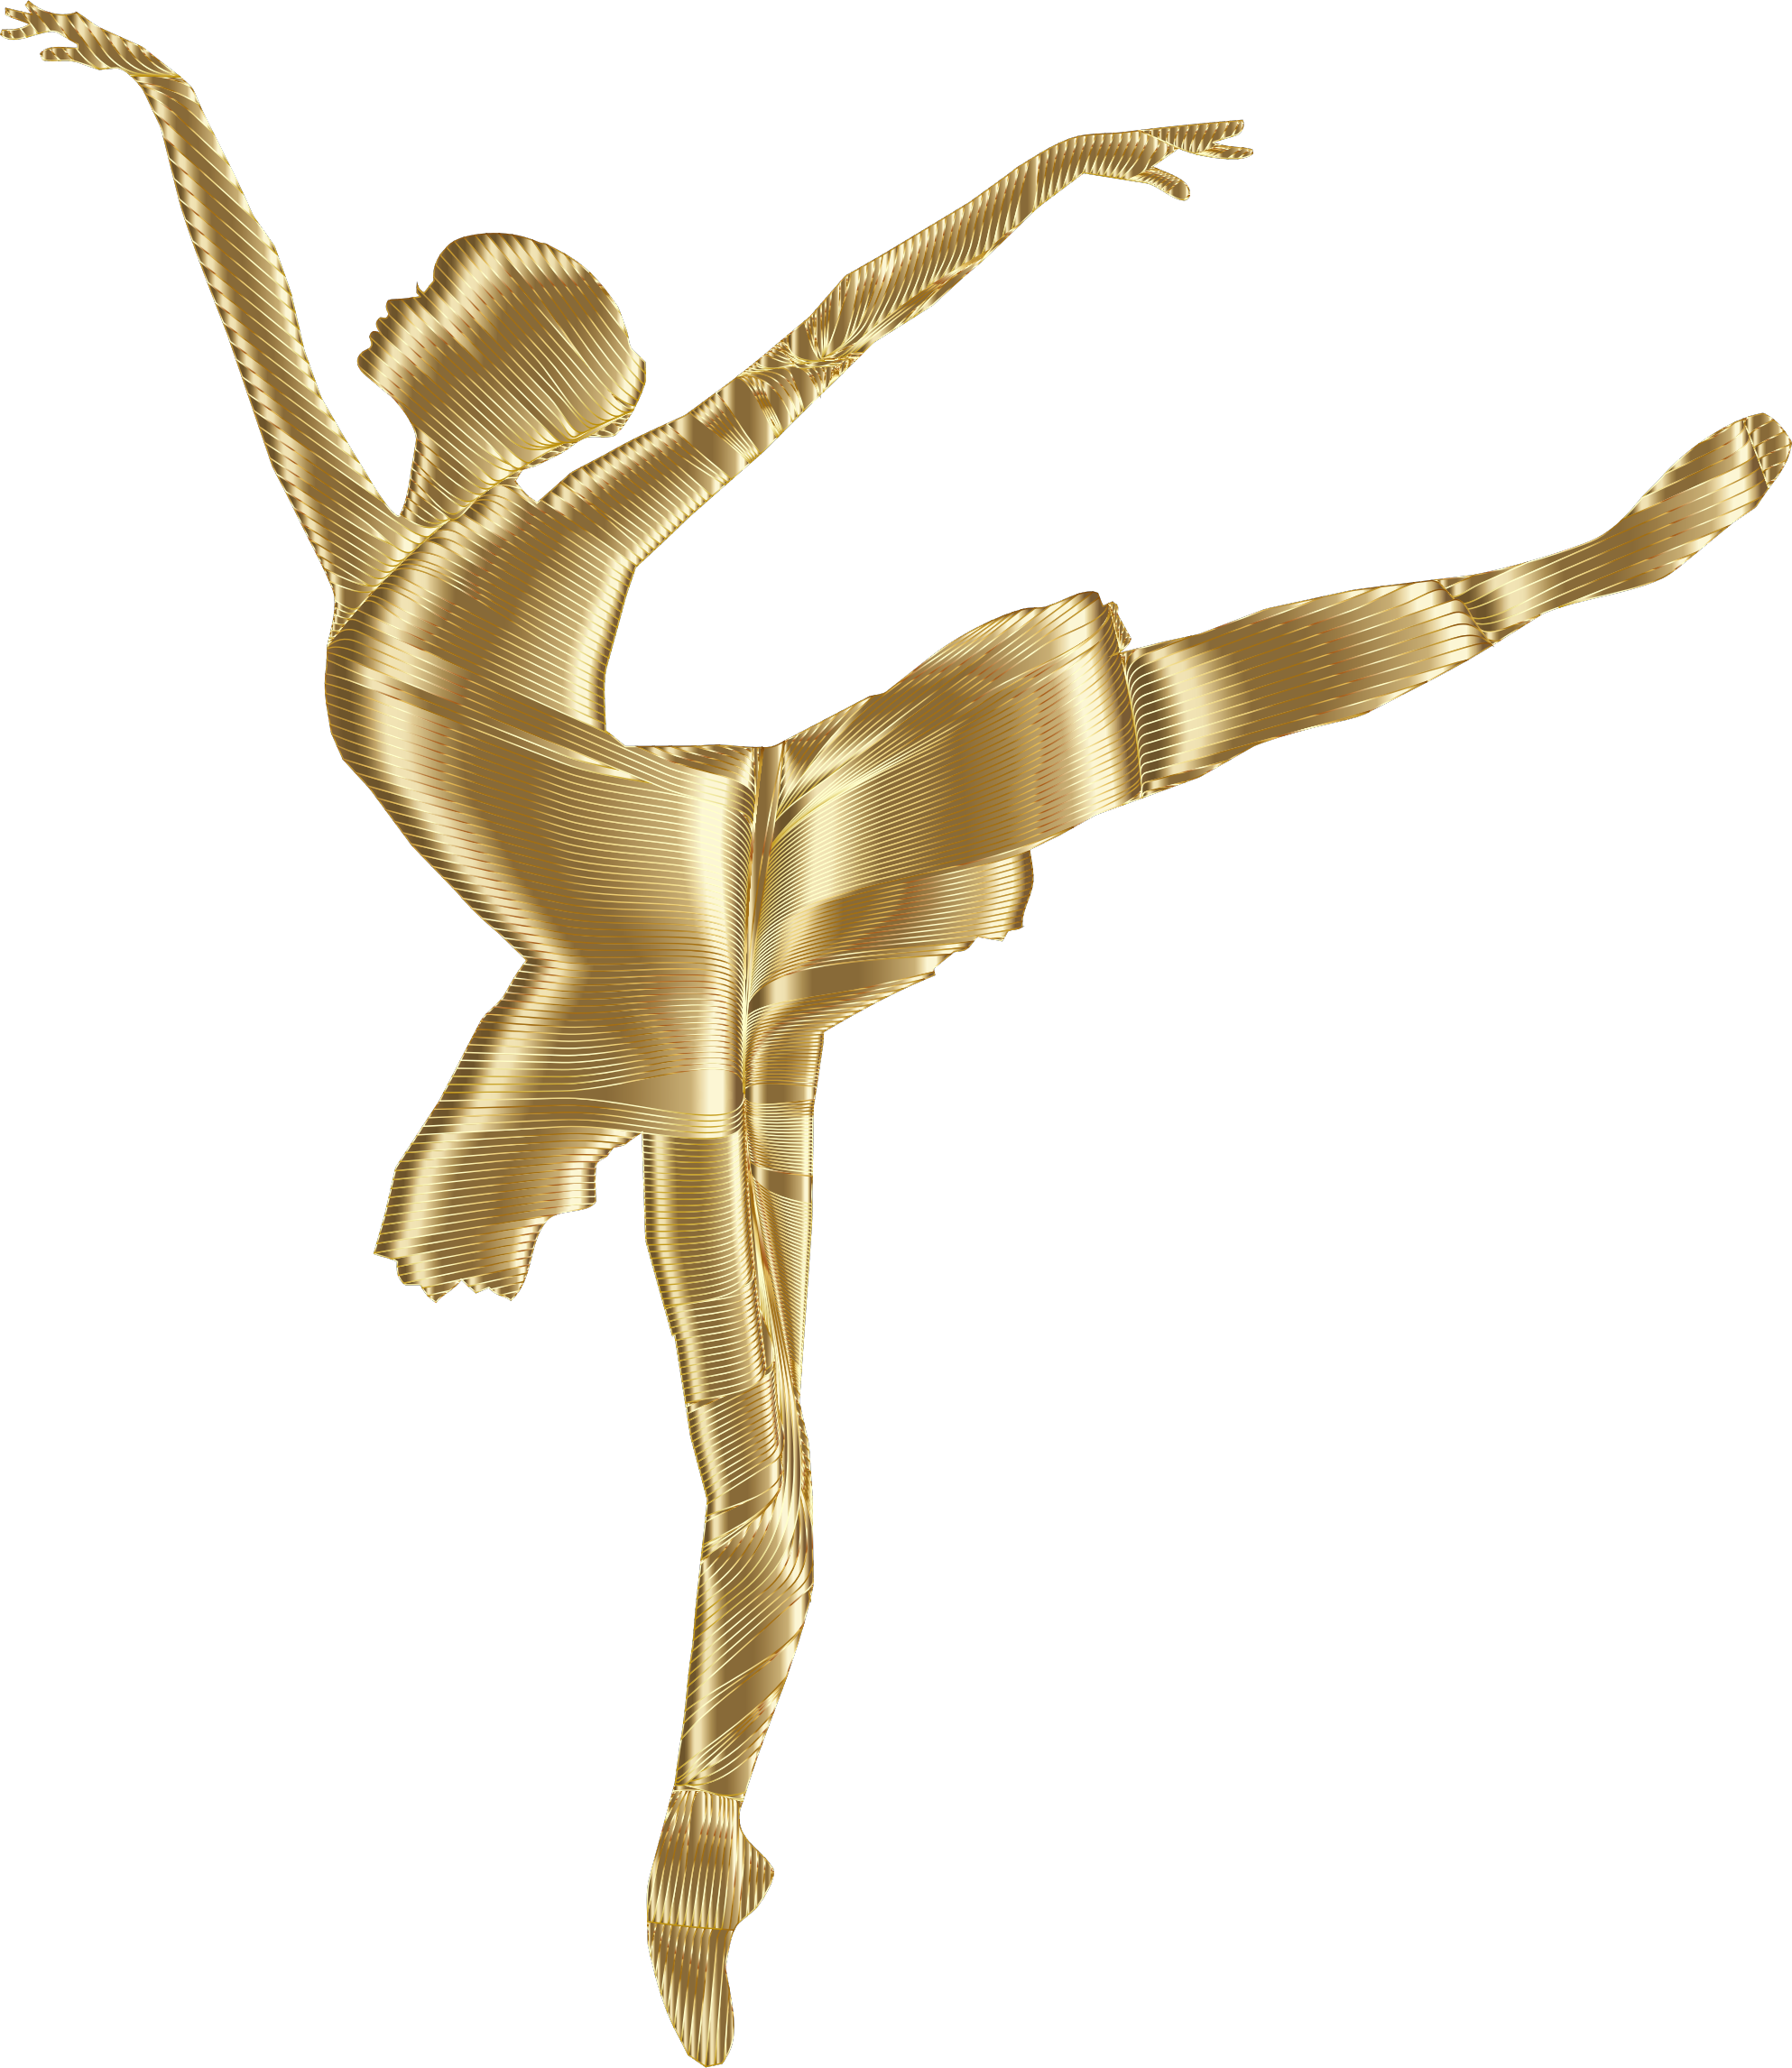 Clipart - Golden Graceful Ballerina Silhouette No Background